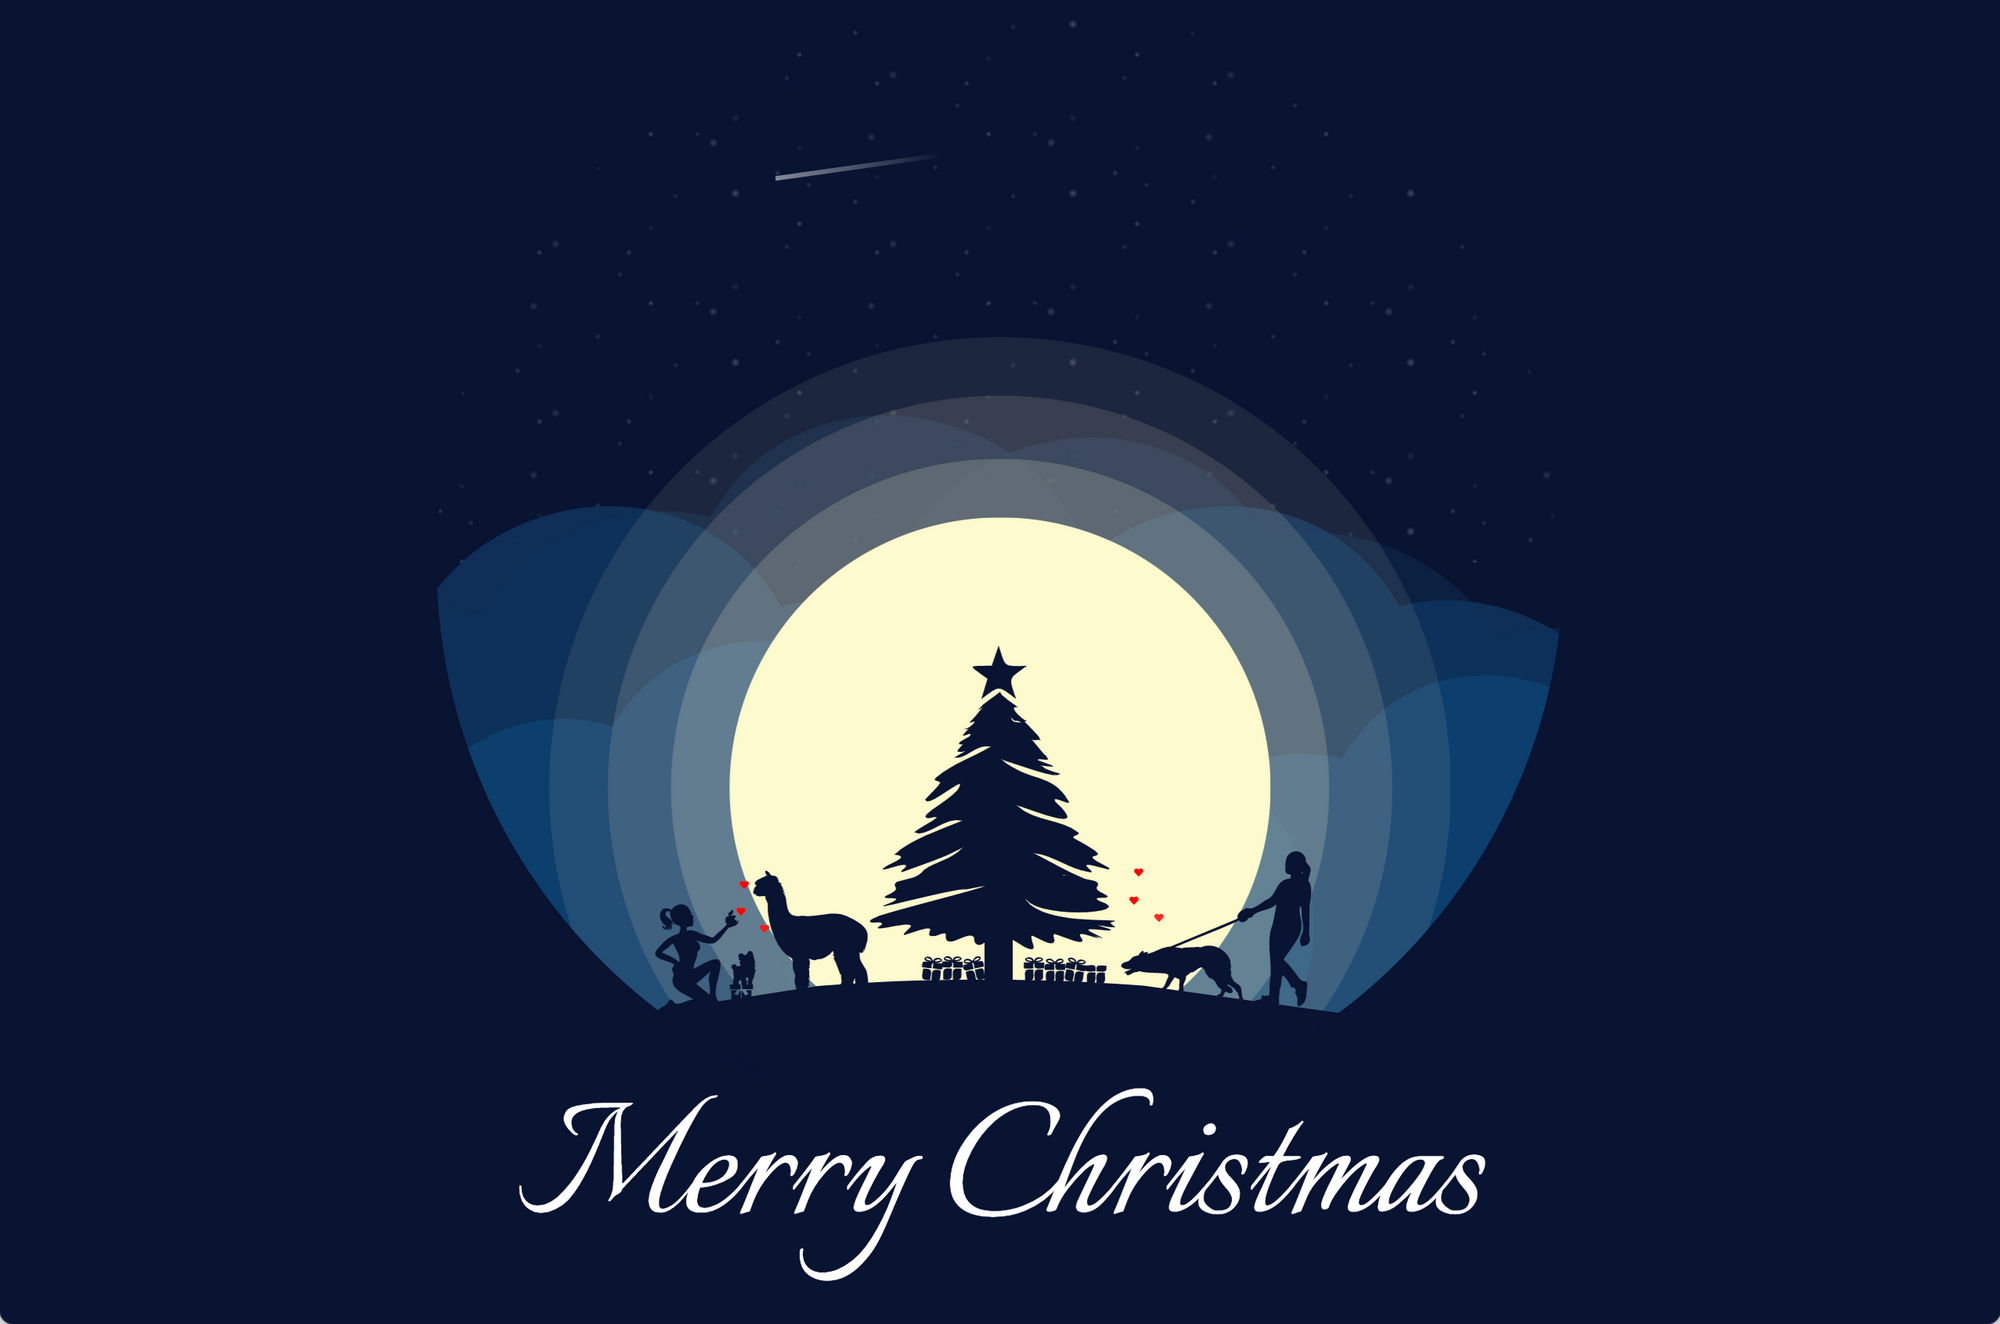 Screenshot of the Christmas Card created with HTML, CSS, and SVG